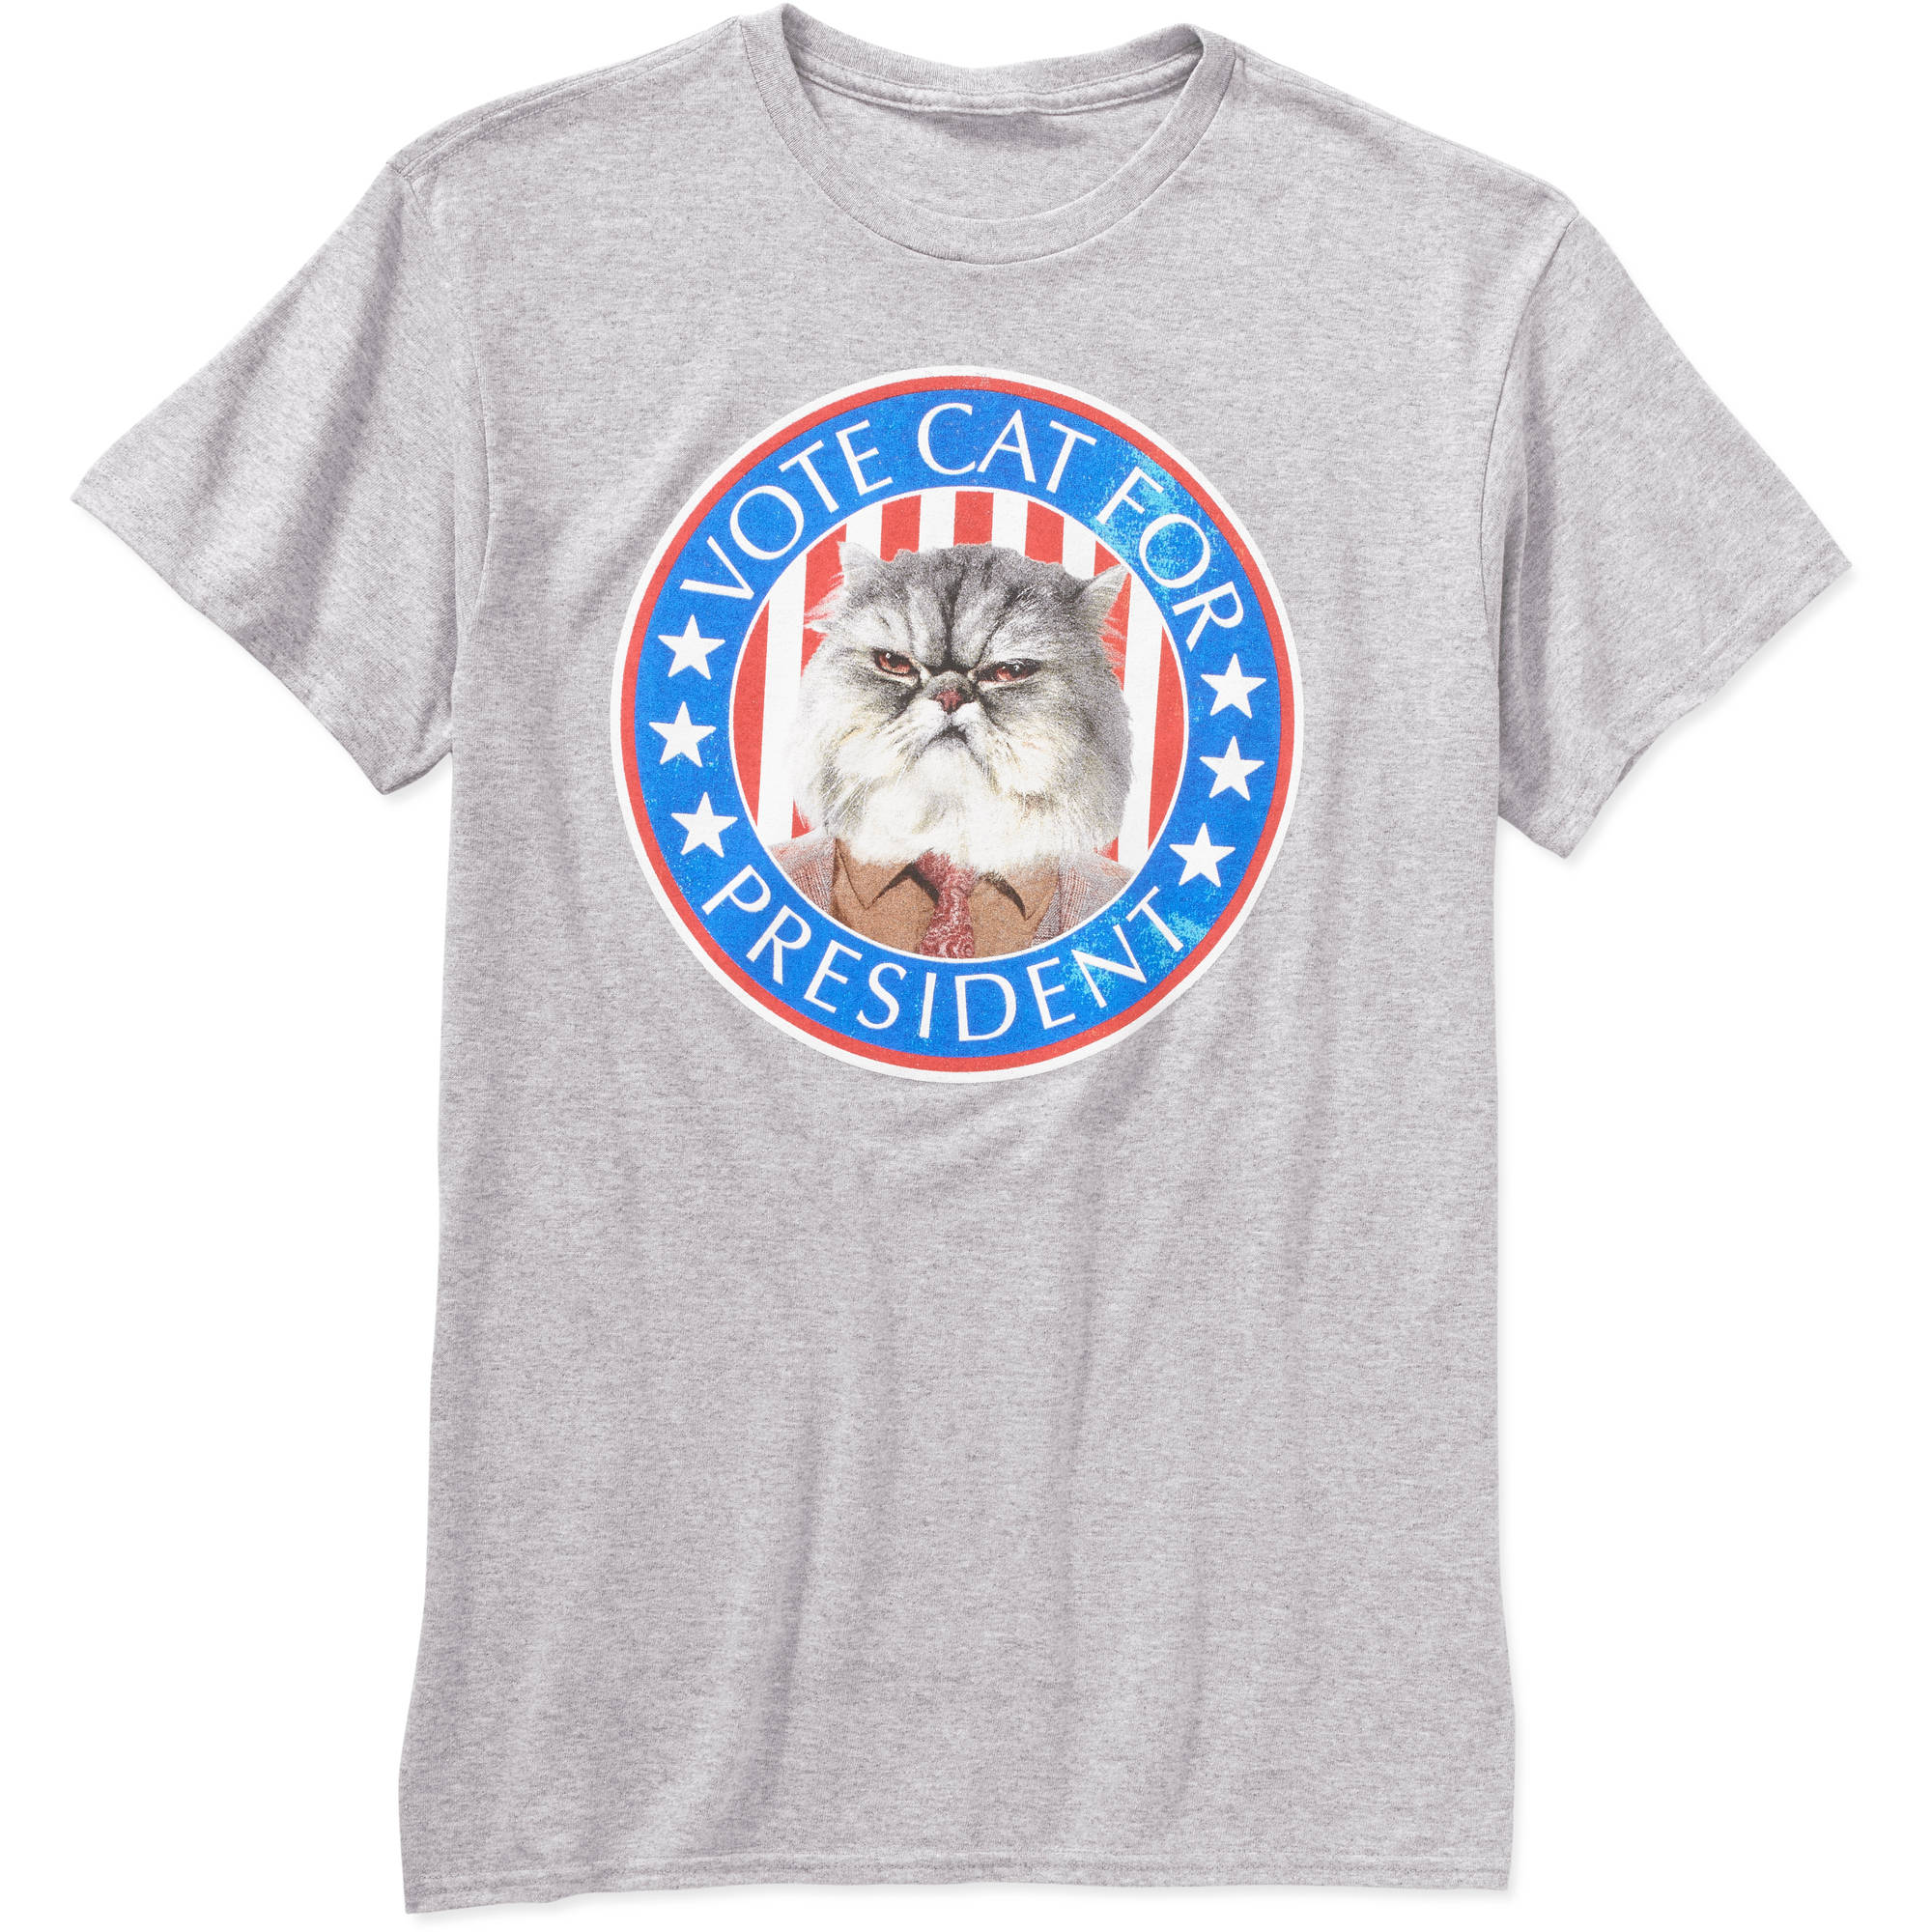 Vote Cat for President Big Men's Graphic Tee